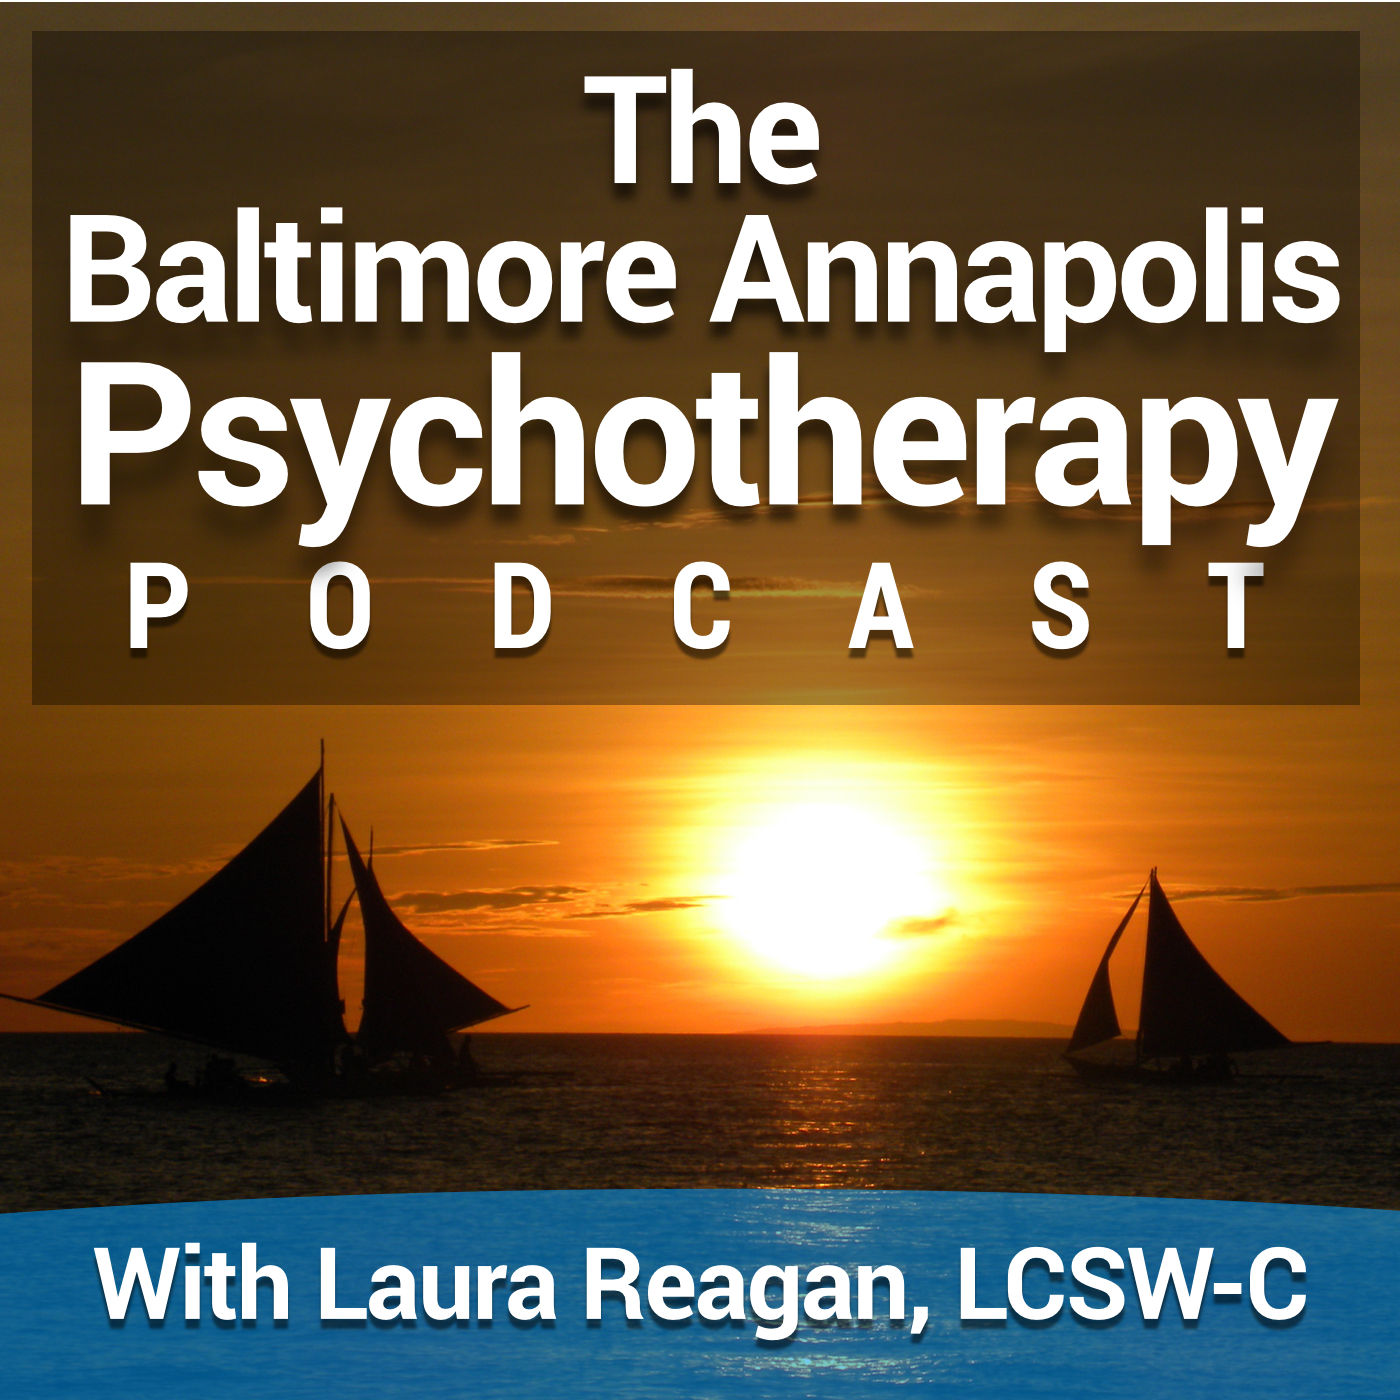 Baltimore Annapolis Psychotherapy Podcast Listen Now